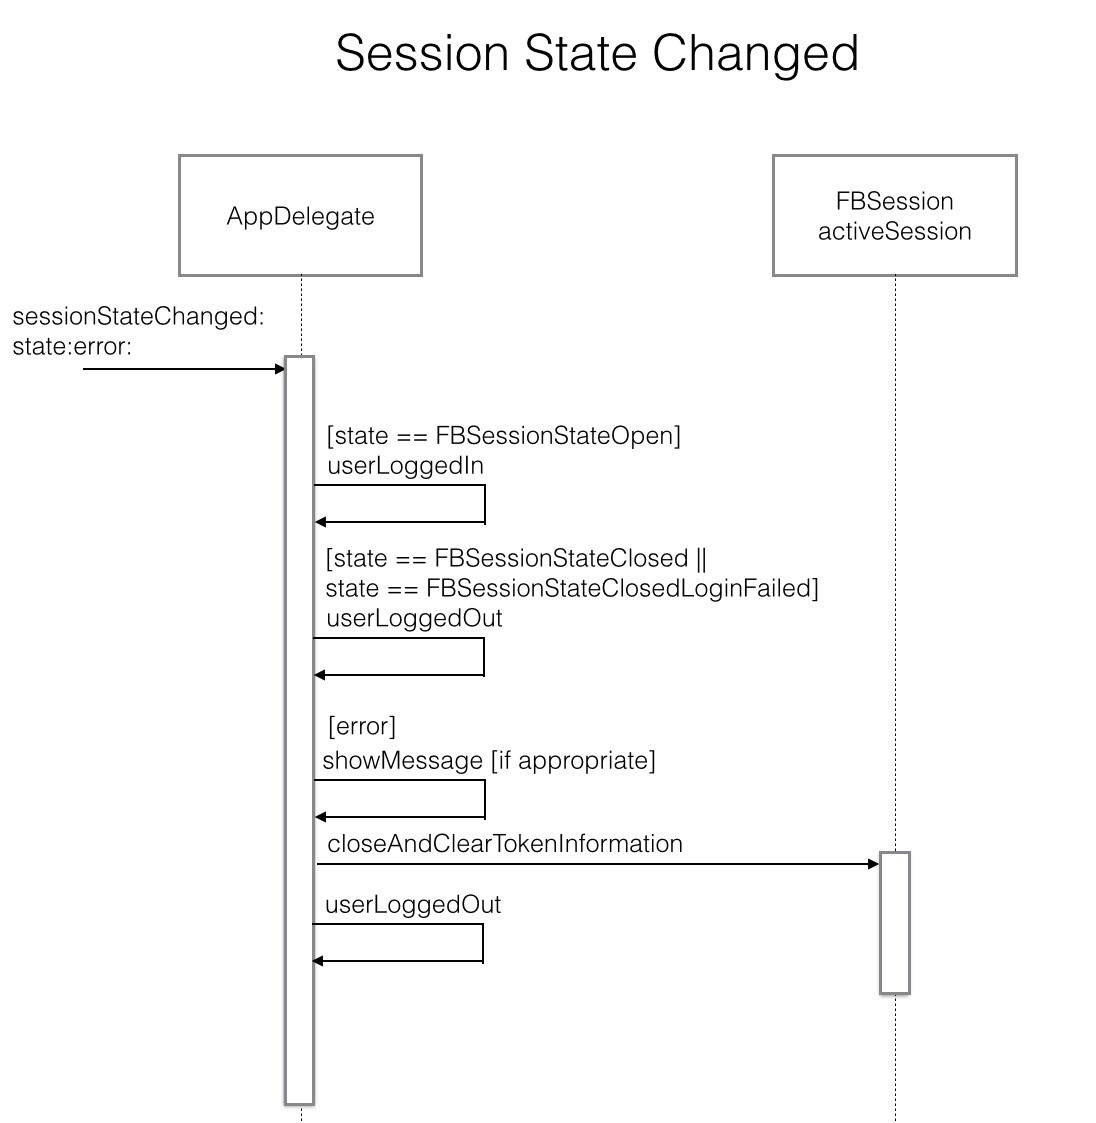 Session State Changed sequence diagram